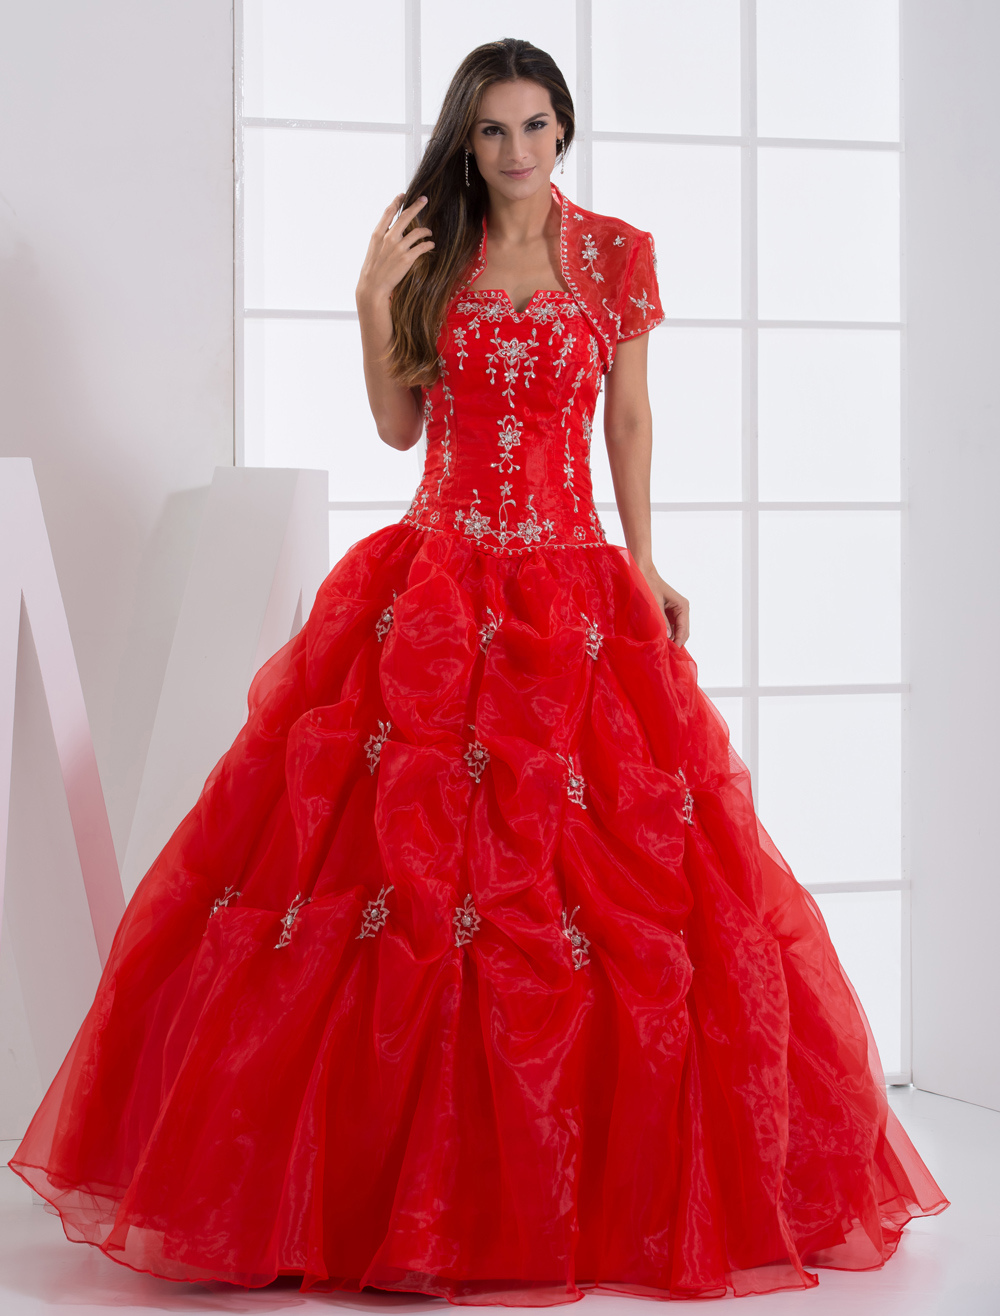 Ball Gown Red Strapless Quinceanera Dress (Wedding Quinceanera Dresses) photo